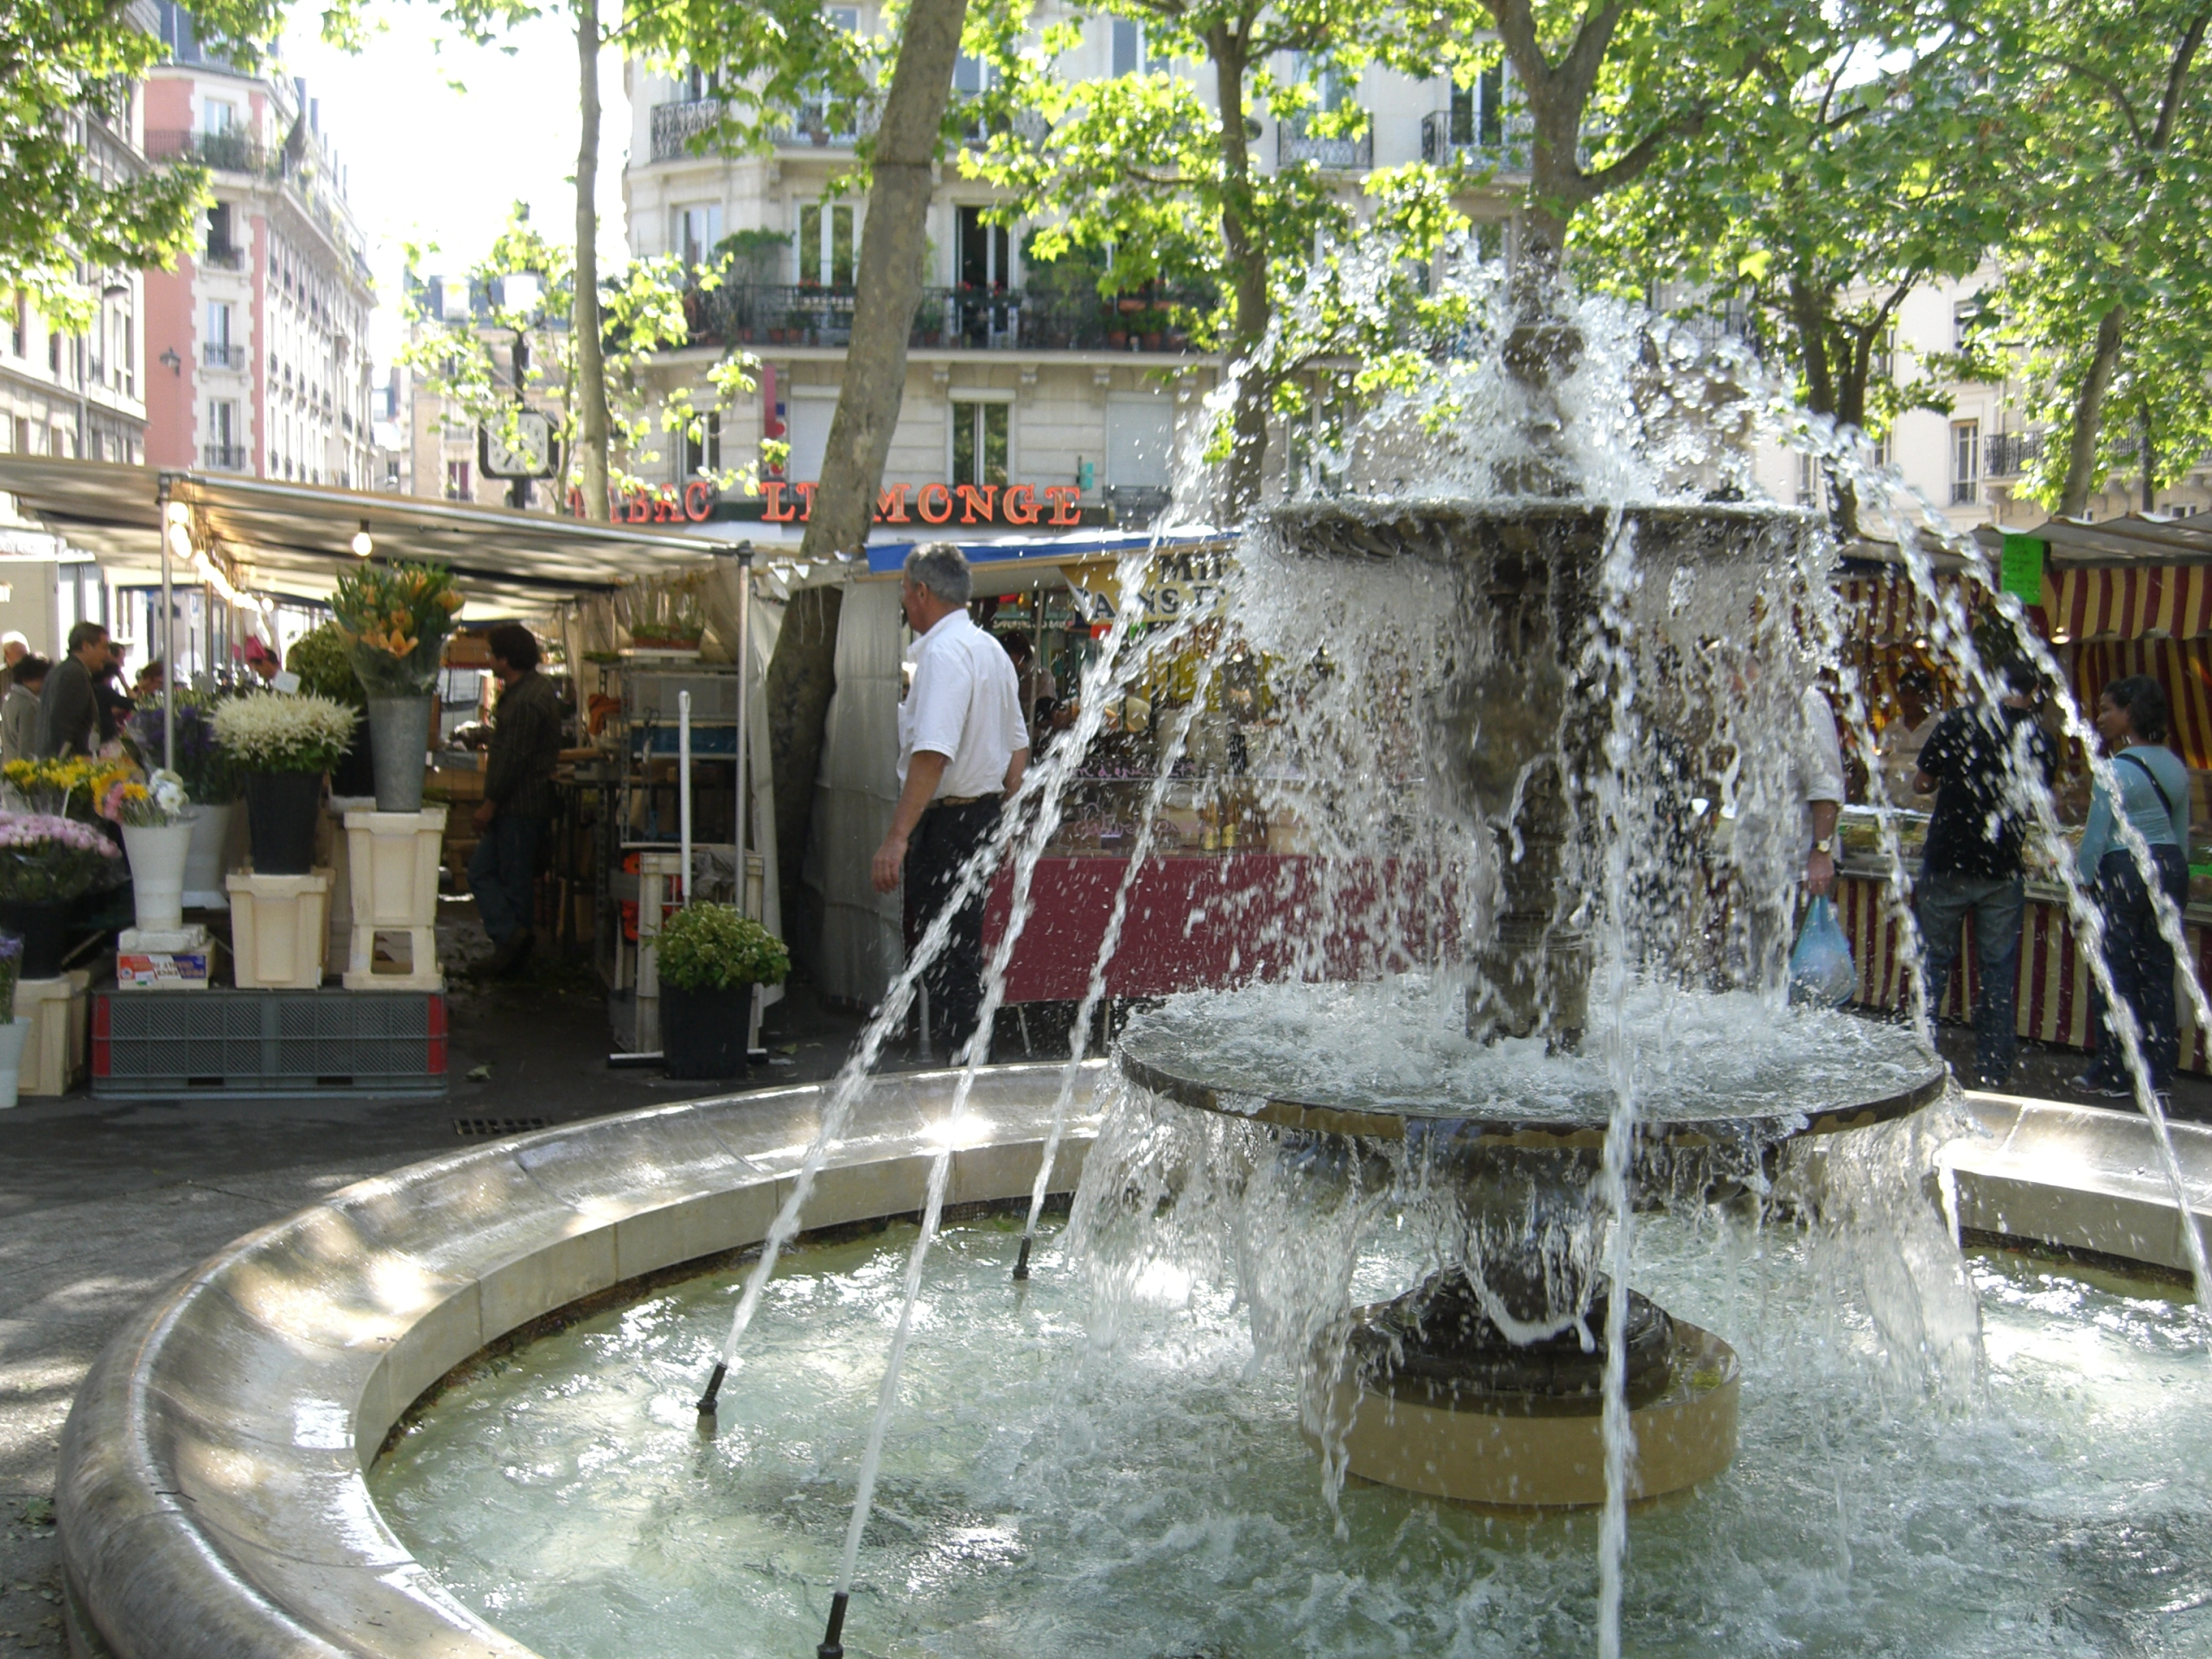 The fountain at Place Monge on Sunday Market day